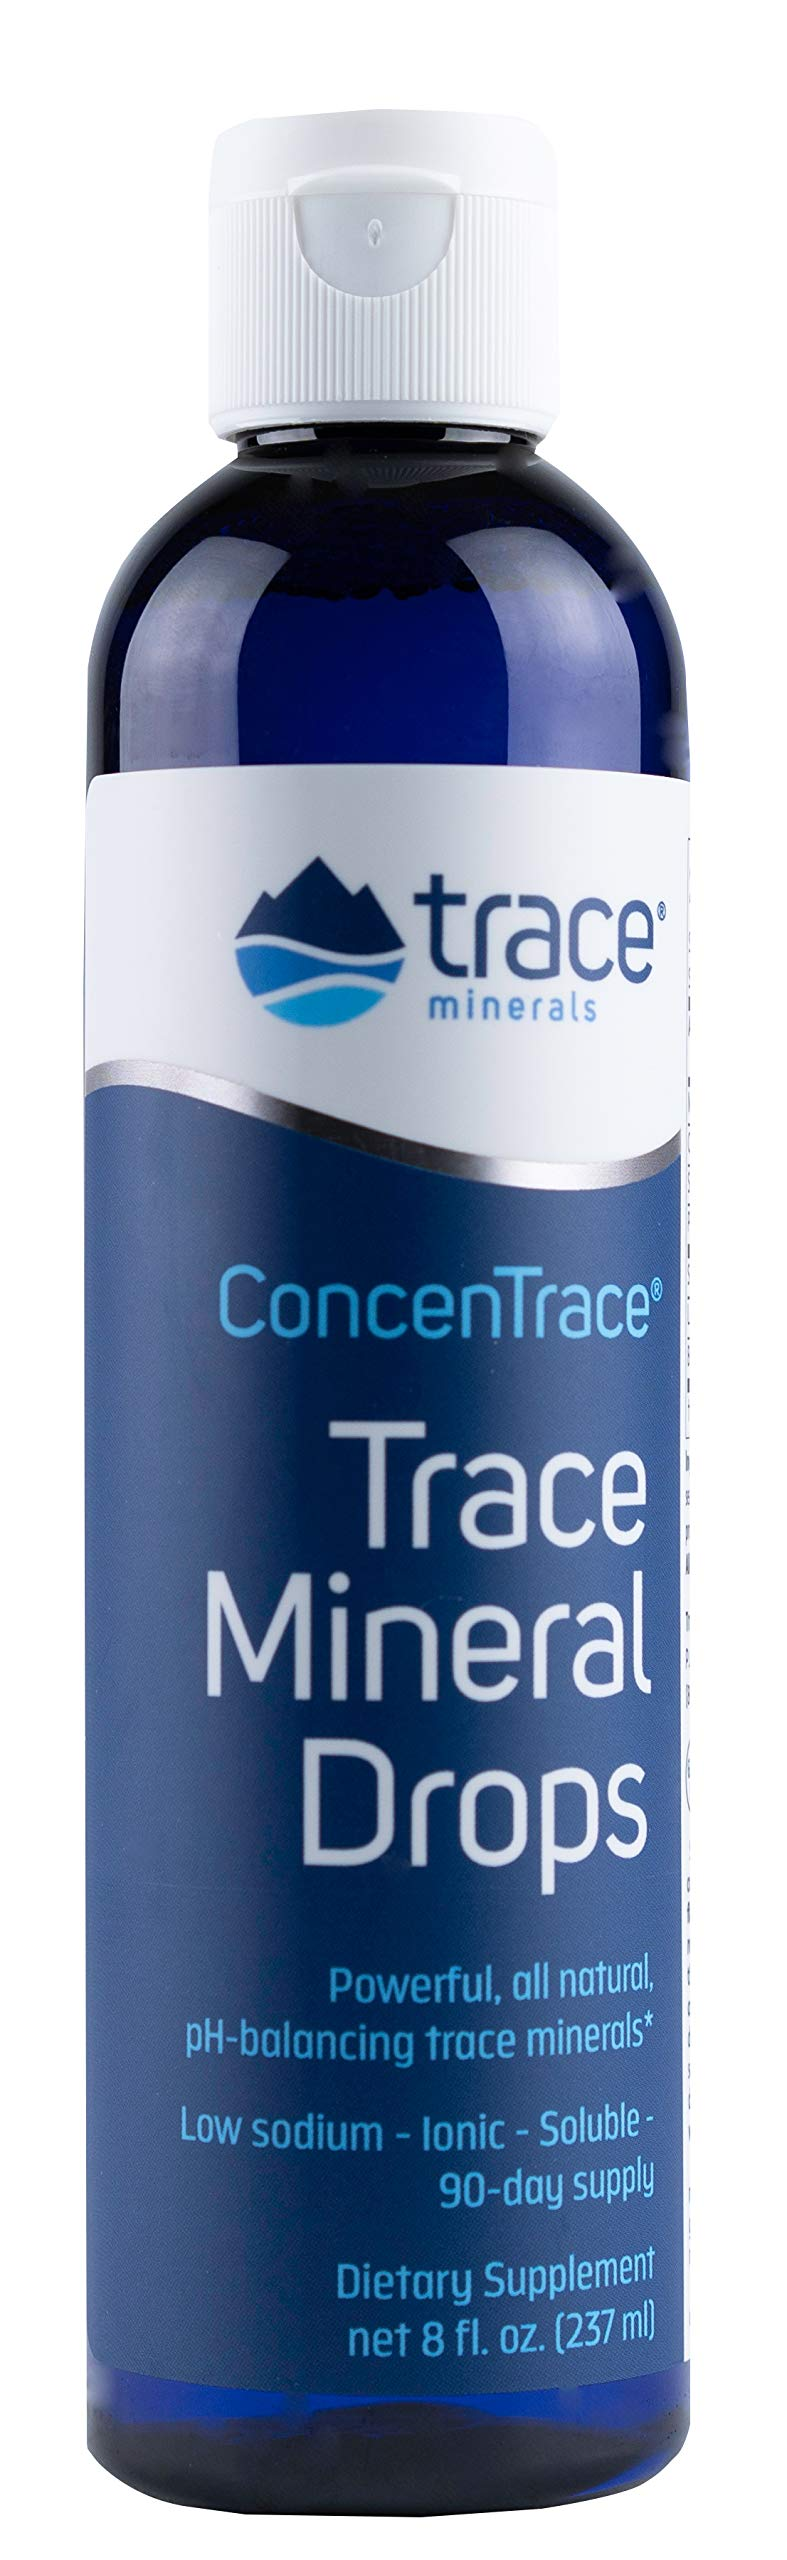 Trace Minerals Research - Concentrace Trace Mineral Drops, 8 Fl Oz liquid by Trace Minerals Research